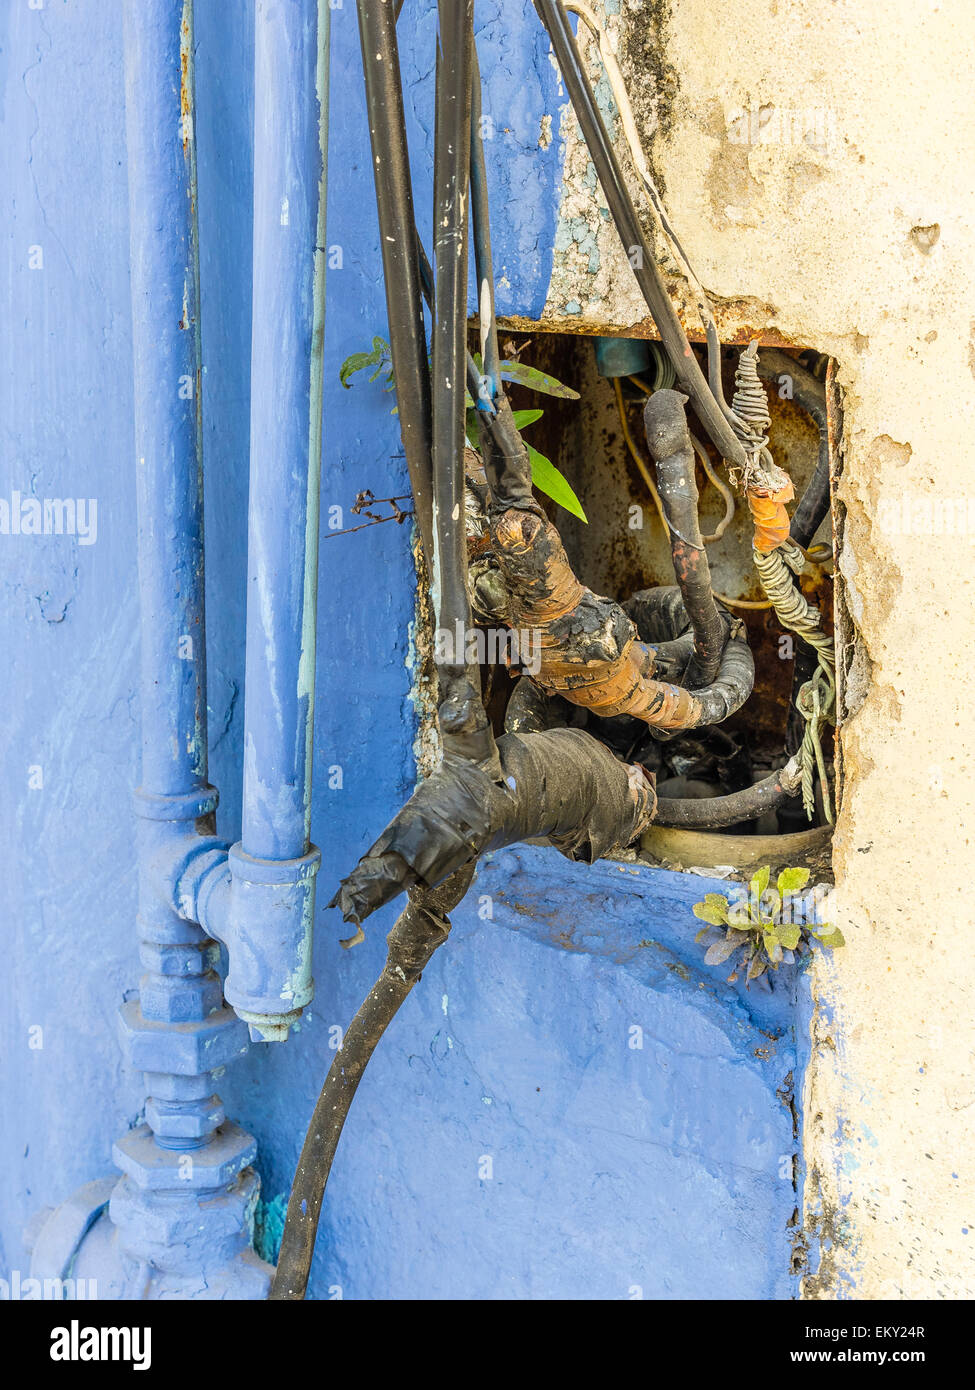 Dangerous Electrical Wiring Stock Photos A Close Up Of Unsafe In The Side Building Havana